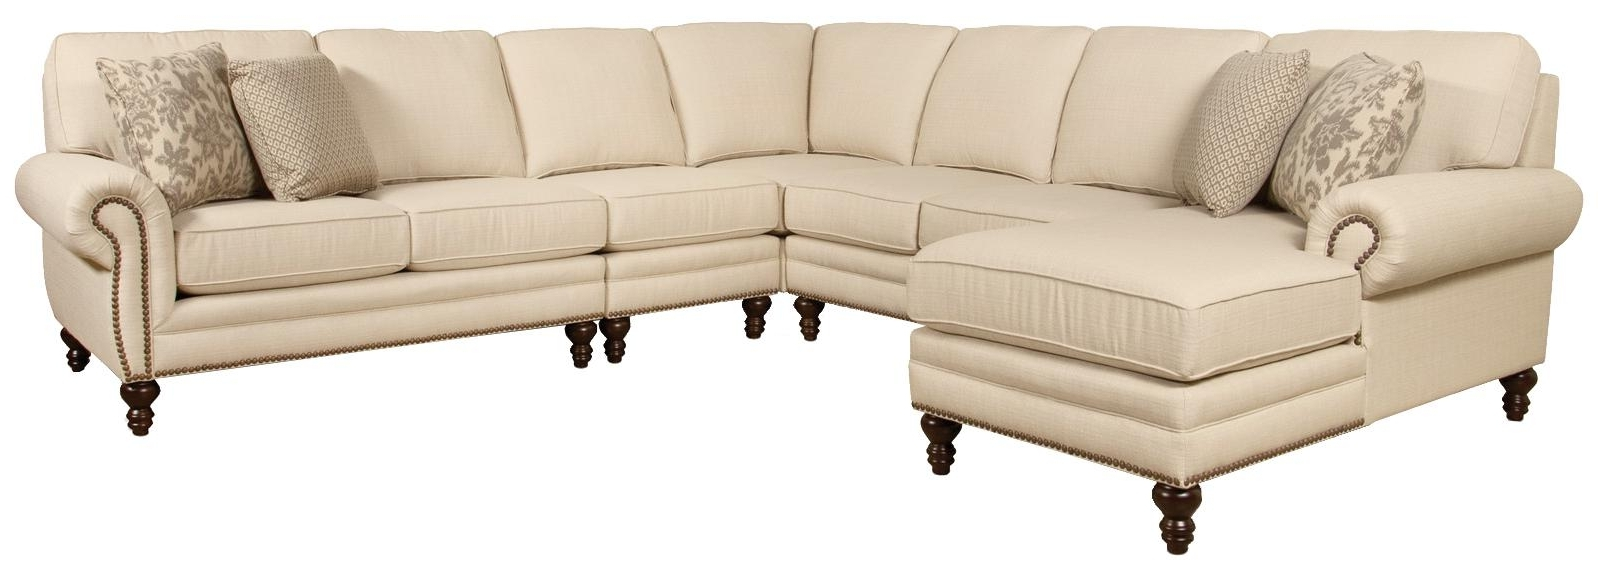 Preferred Sectional Sofas With Nailhead Trim For England Amix Seven Seat Sectional Sofa With Left Side Chaise (View 11 of 20)